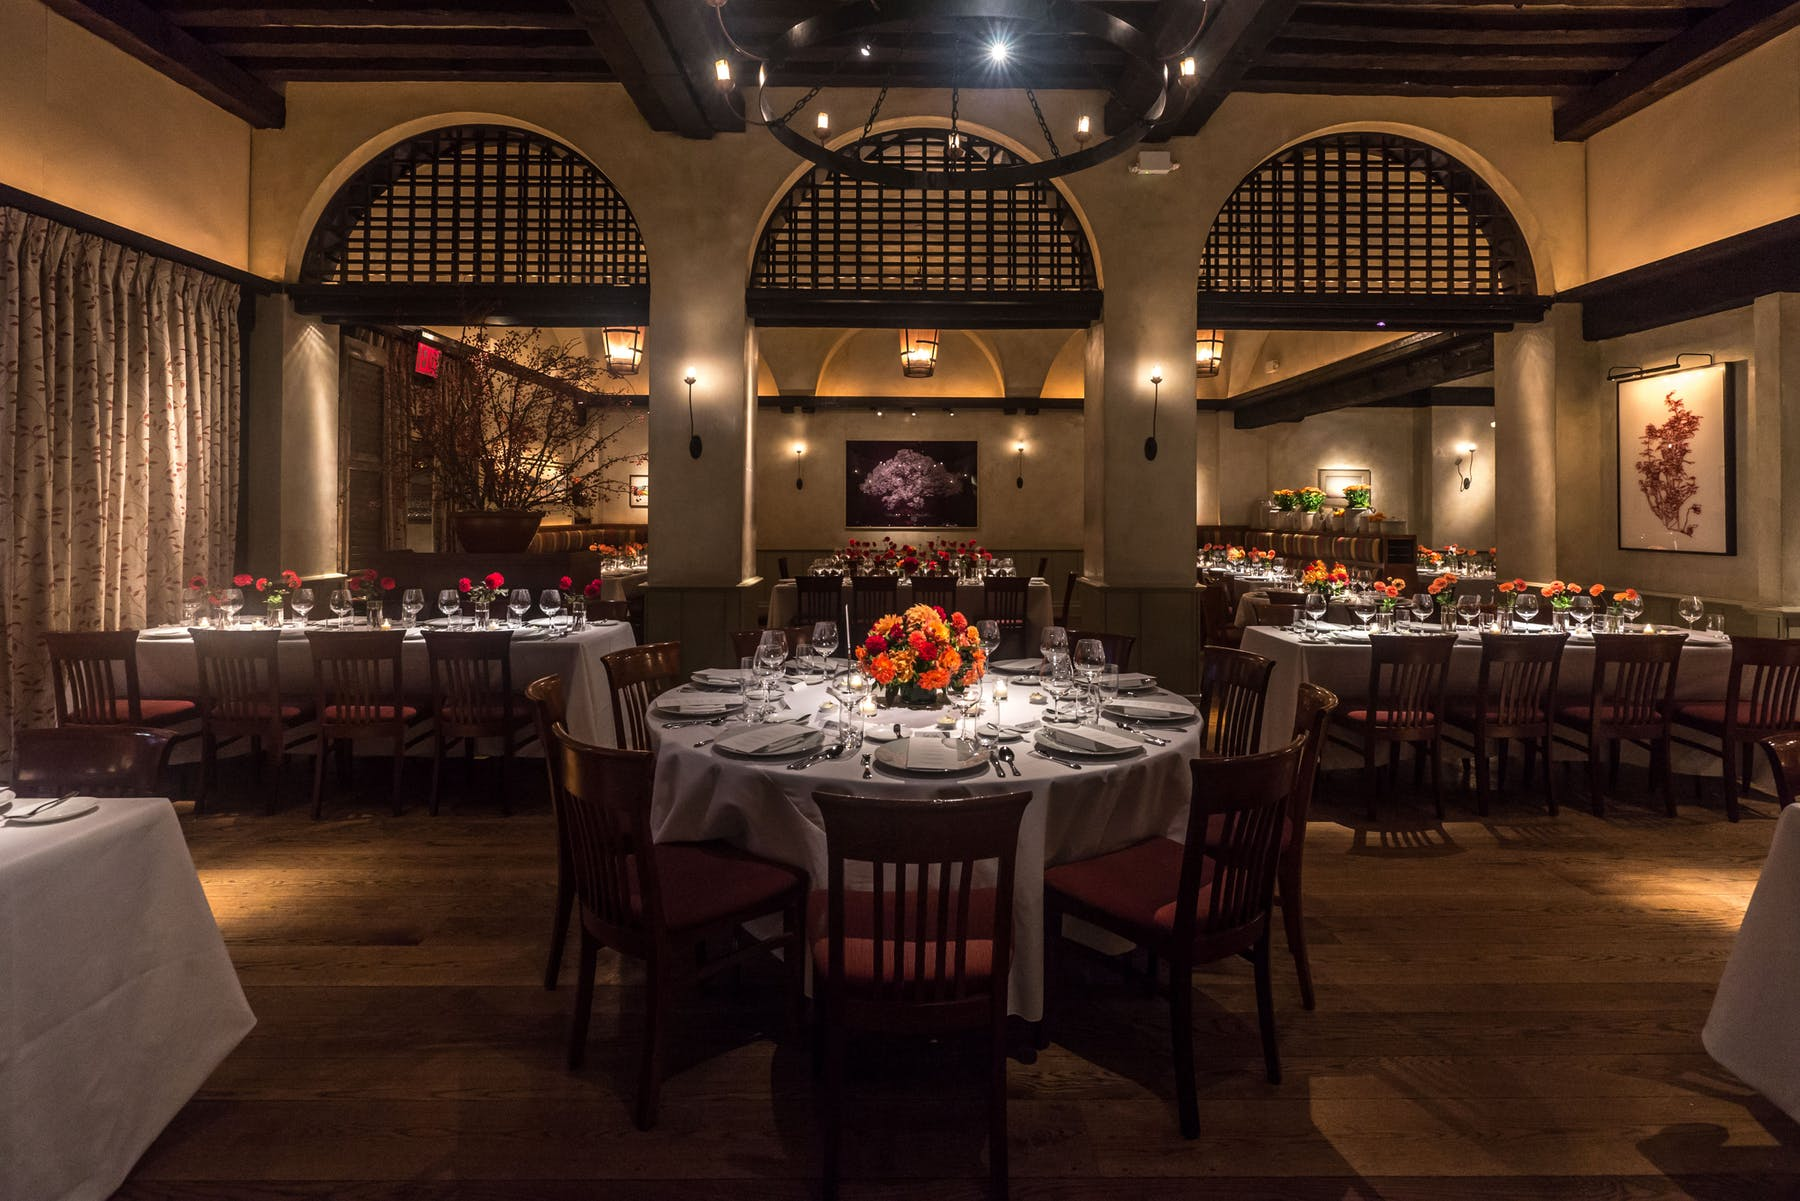 Gramercy Tavern event space in New York City, NYC, NY/NJ Area